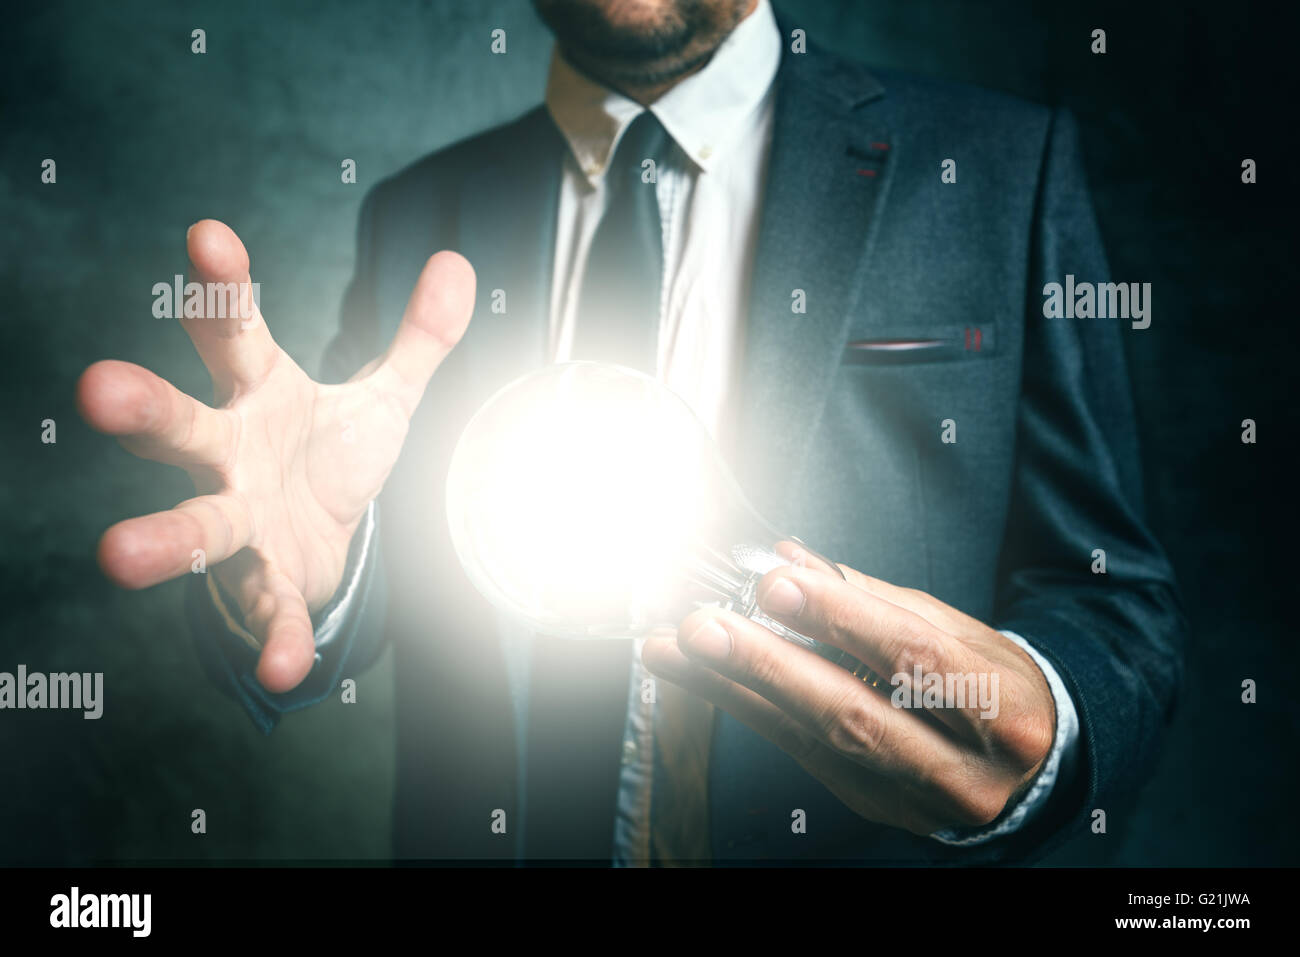 Business creativity and vision concept with elegant adult businessman holding bright light bulb as metaphor of new - Stock Image